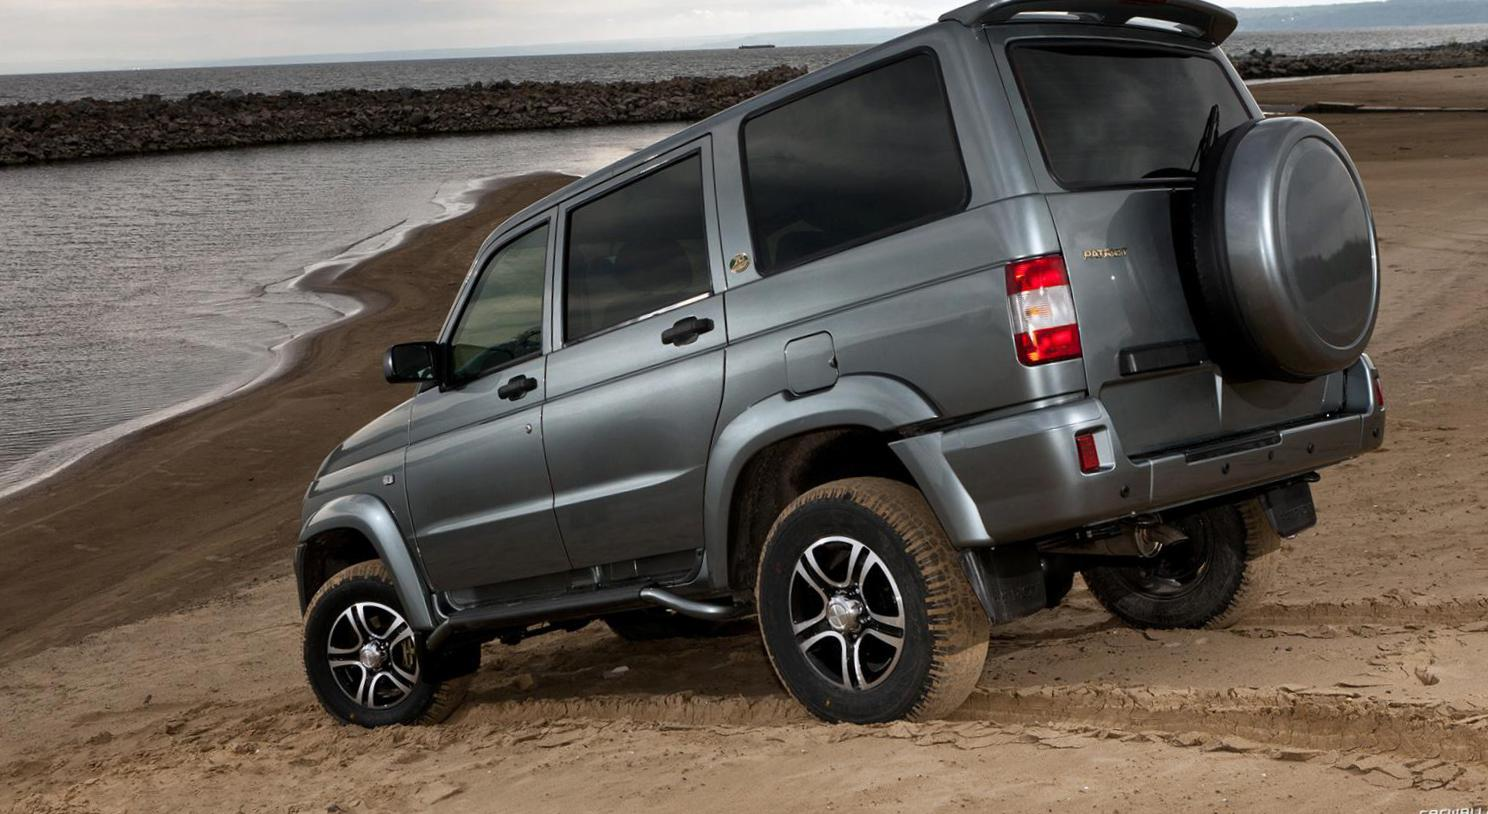 Patriot UAZ configuration suv